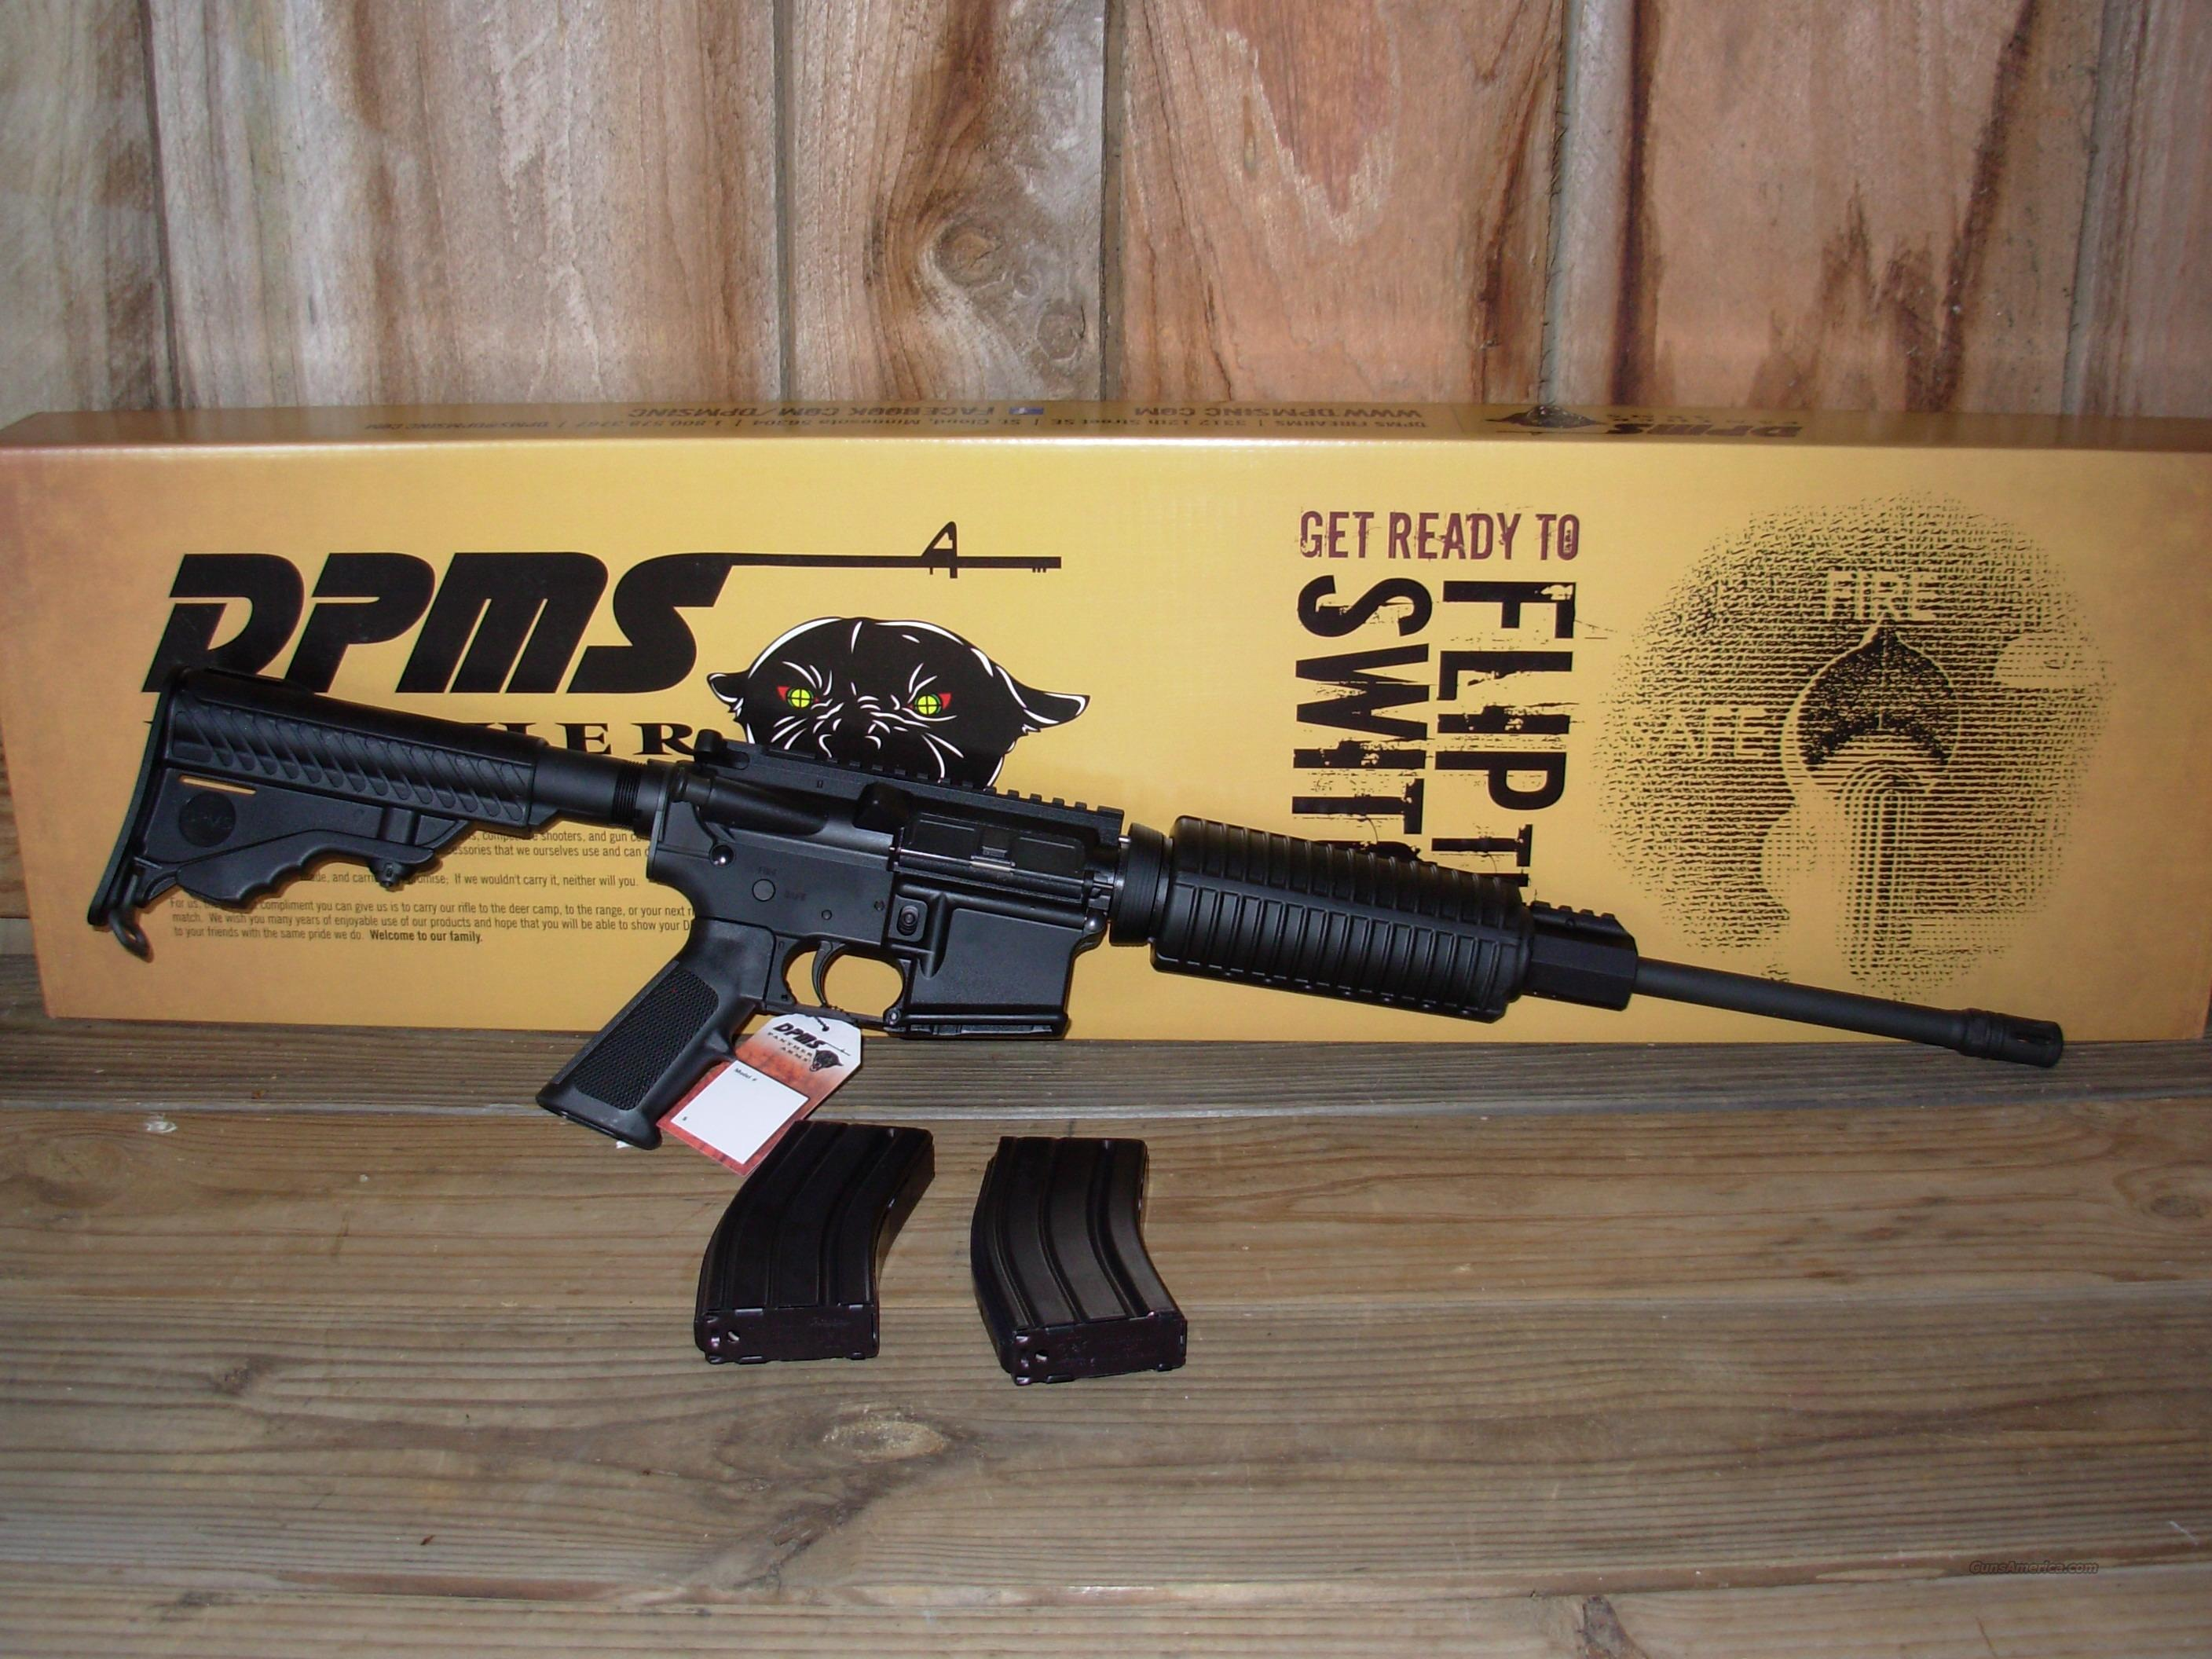 NIB DPMS Panther Arms AR-15 Oracle .223 2 Mags  Guns > Rifles > DPMS - Panther Arms > Complete Rifle